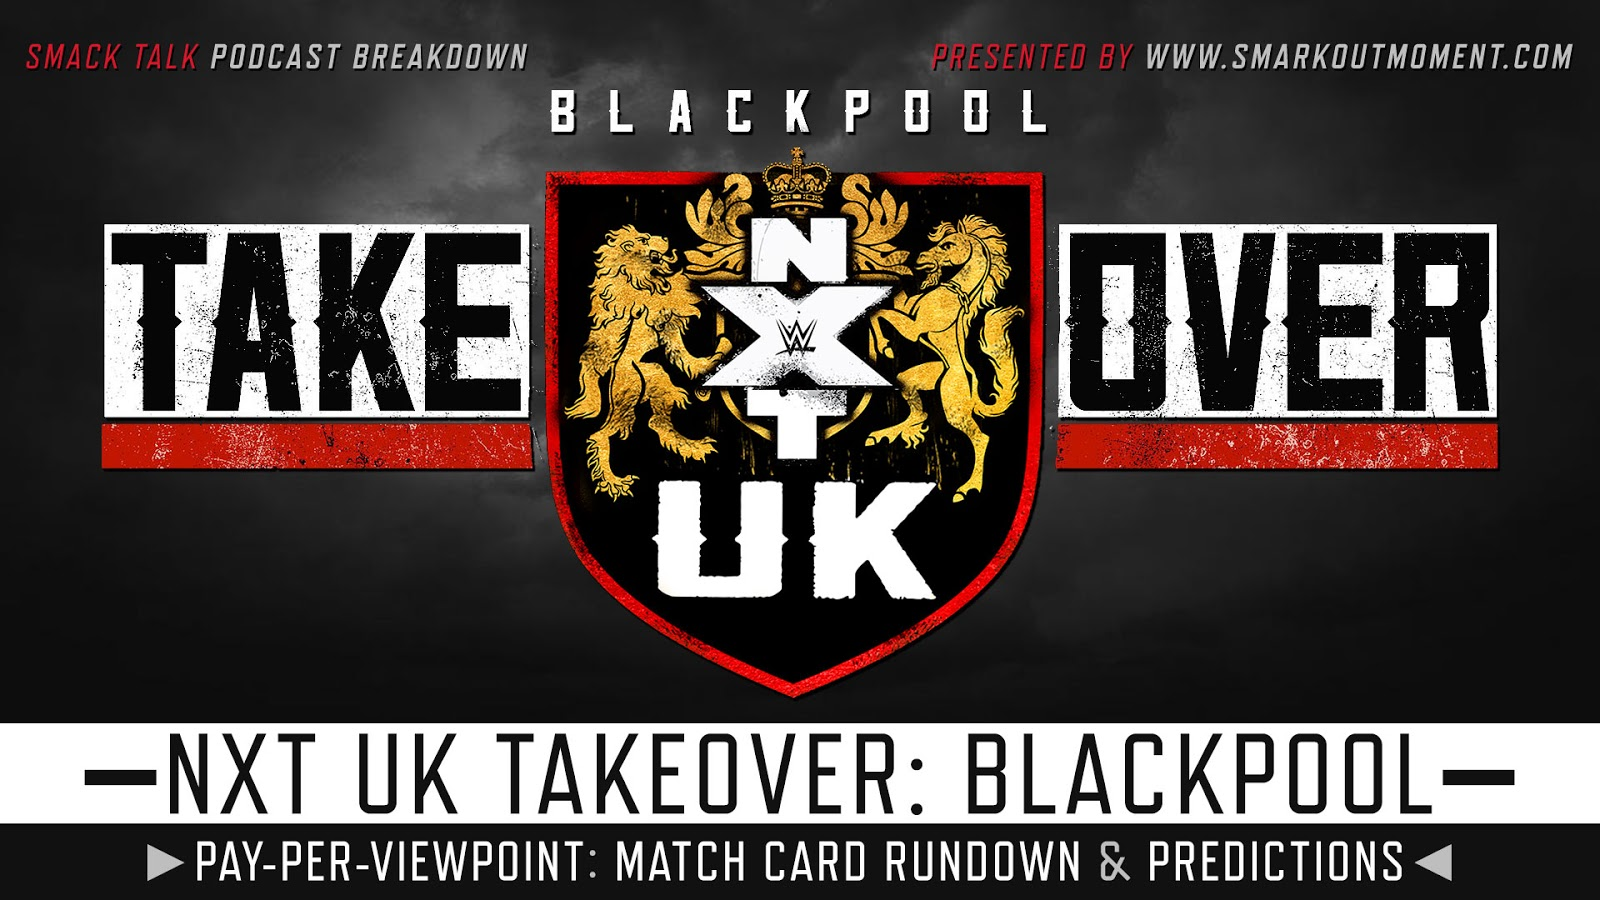 WWE NXT UK TakeOver: Blackpool 2019 spoilers podcast